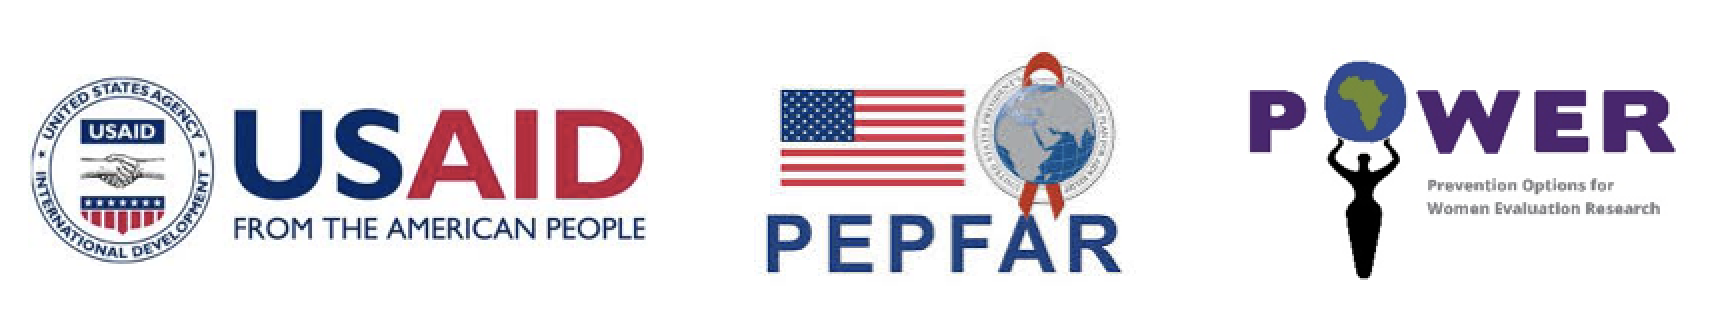 logos for USAID, PEPFAR, and POWER